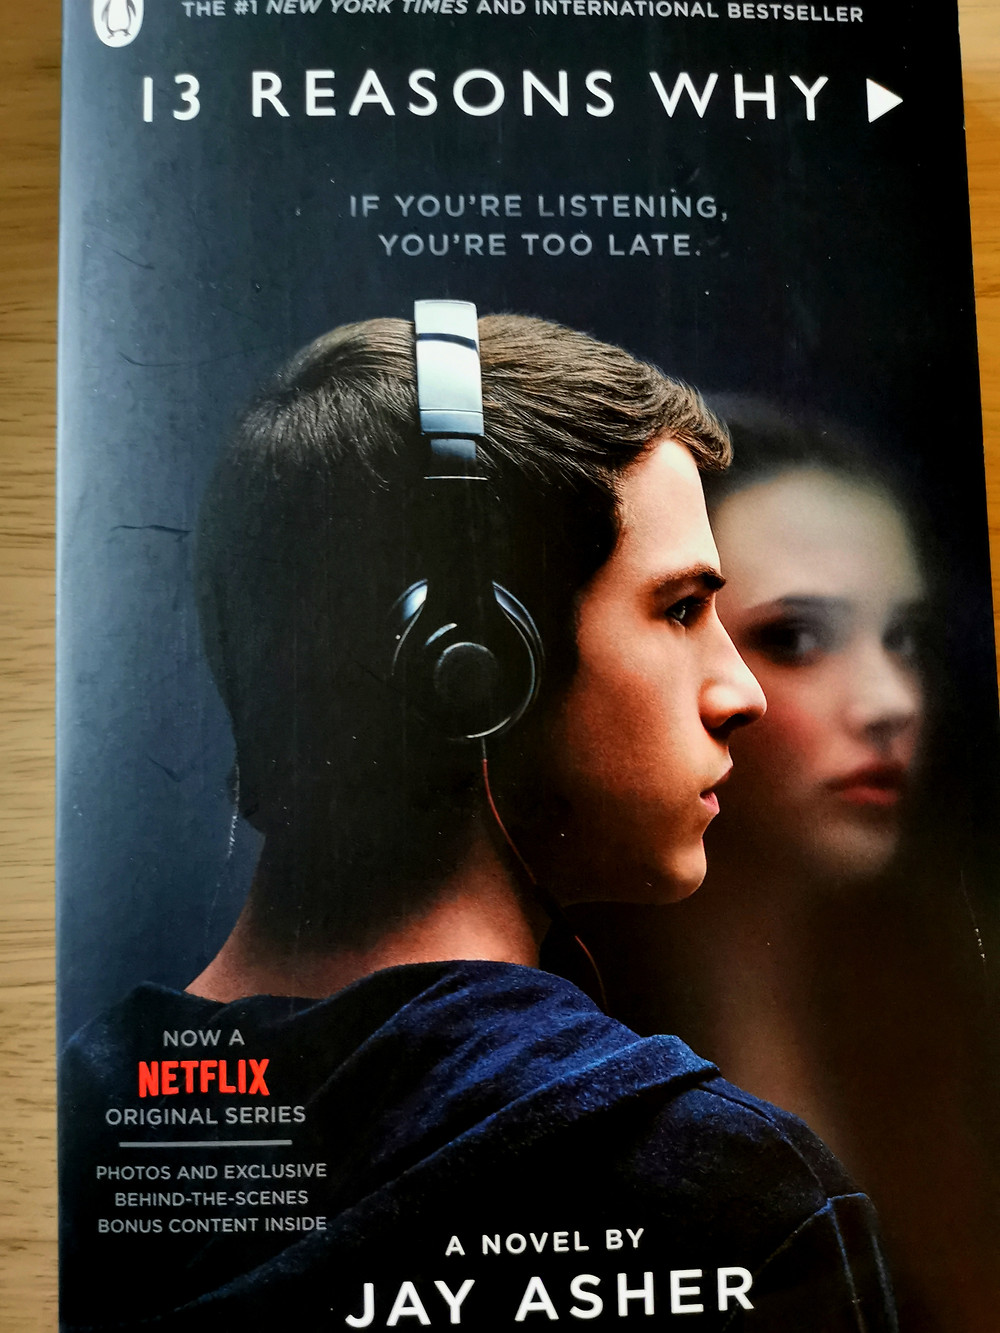 Cover photo of Jay Asher's 'Thirteen Reasons Why' with the actors from the TV series, showing Clay with headphones on and Hannah a ghost in the background